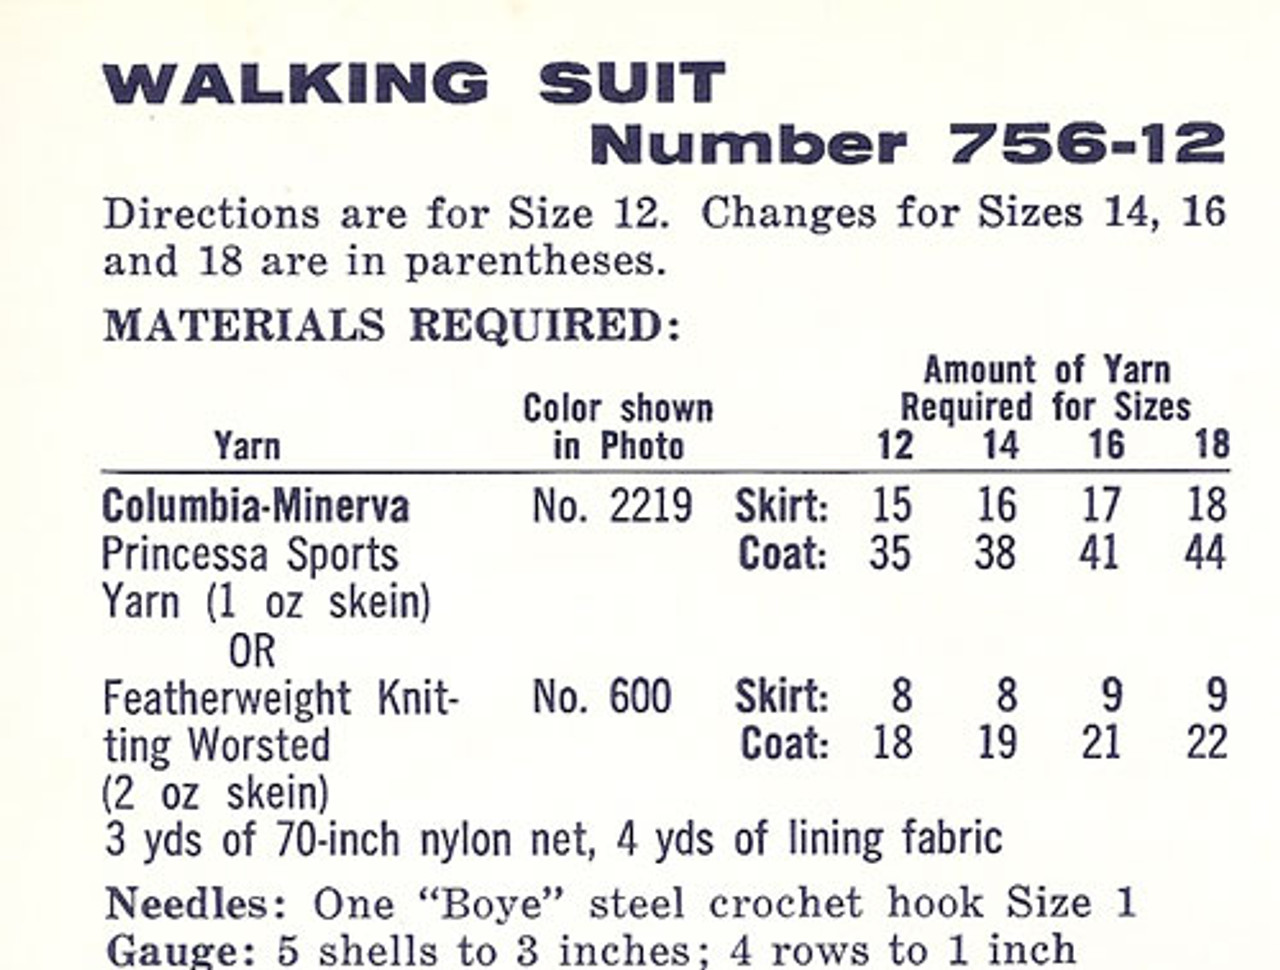 Walking Suit Material and Size Requirements